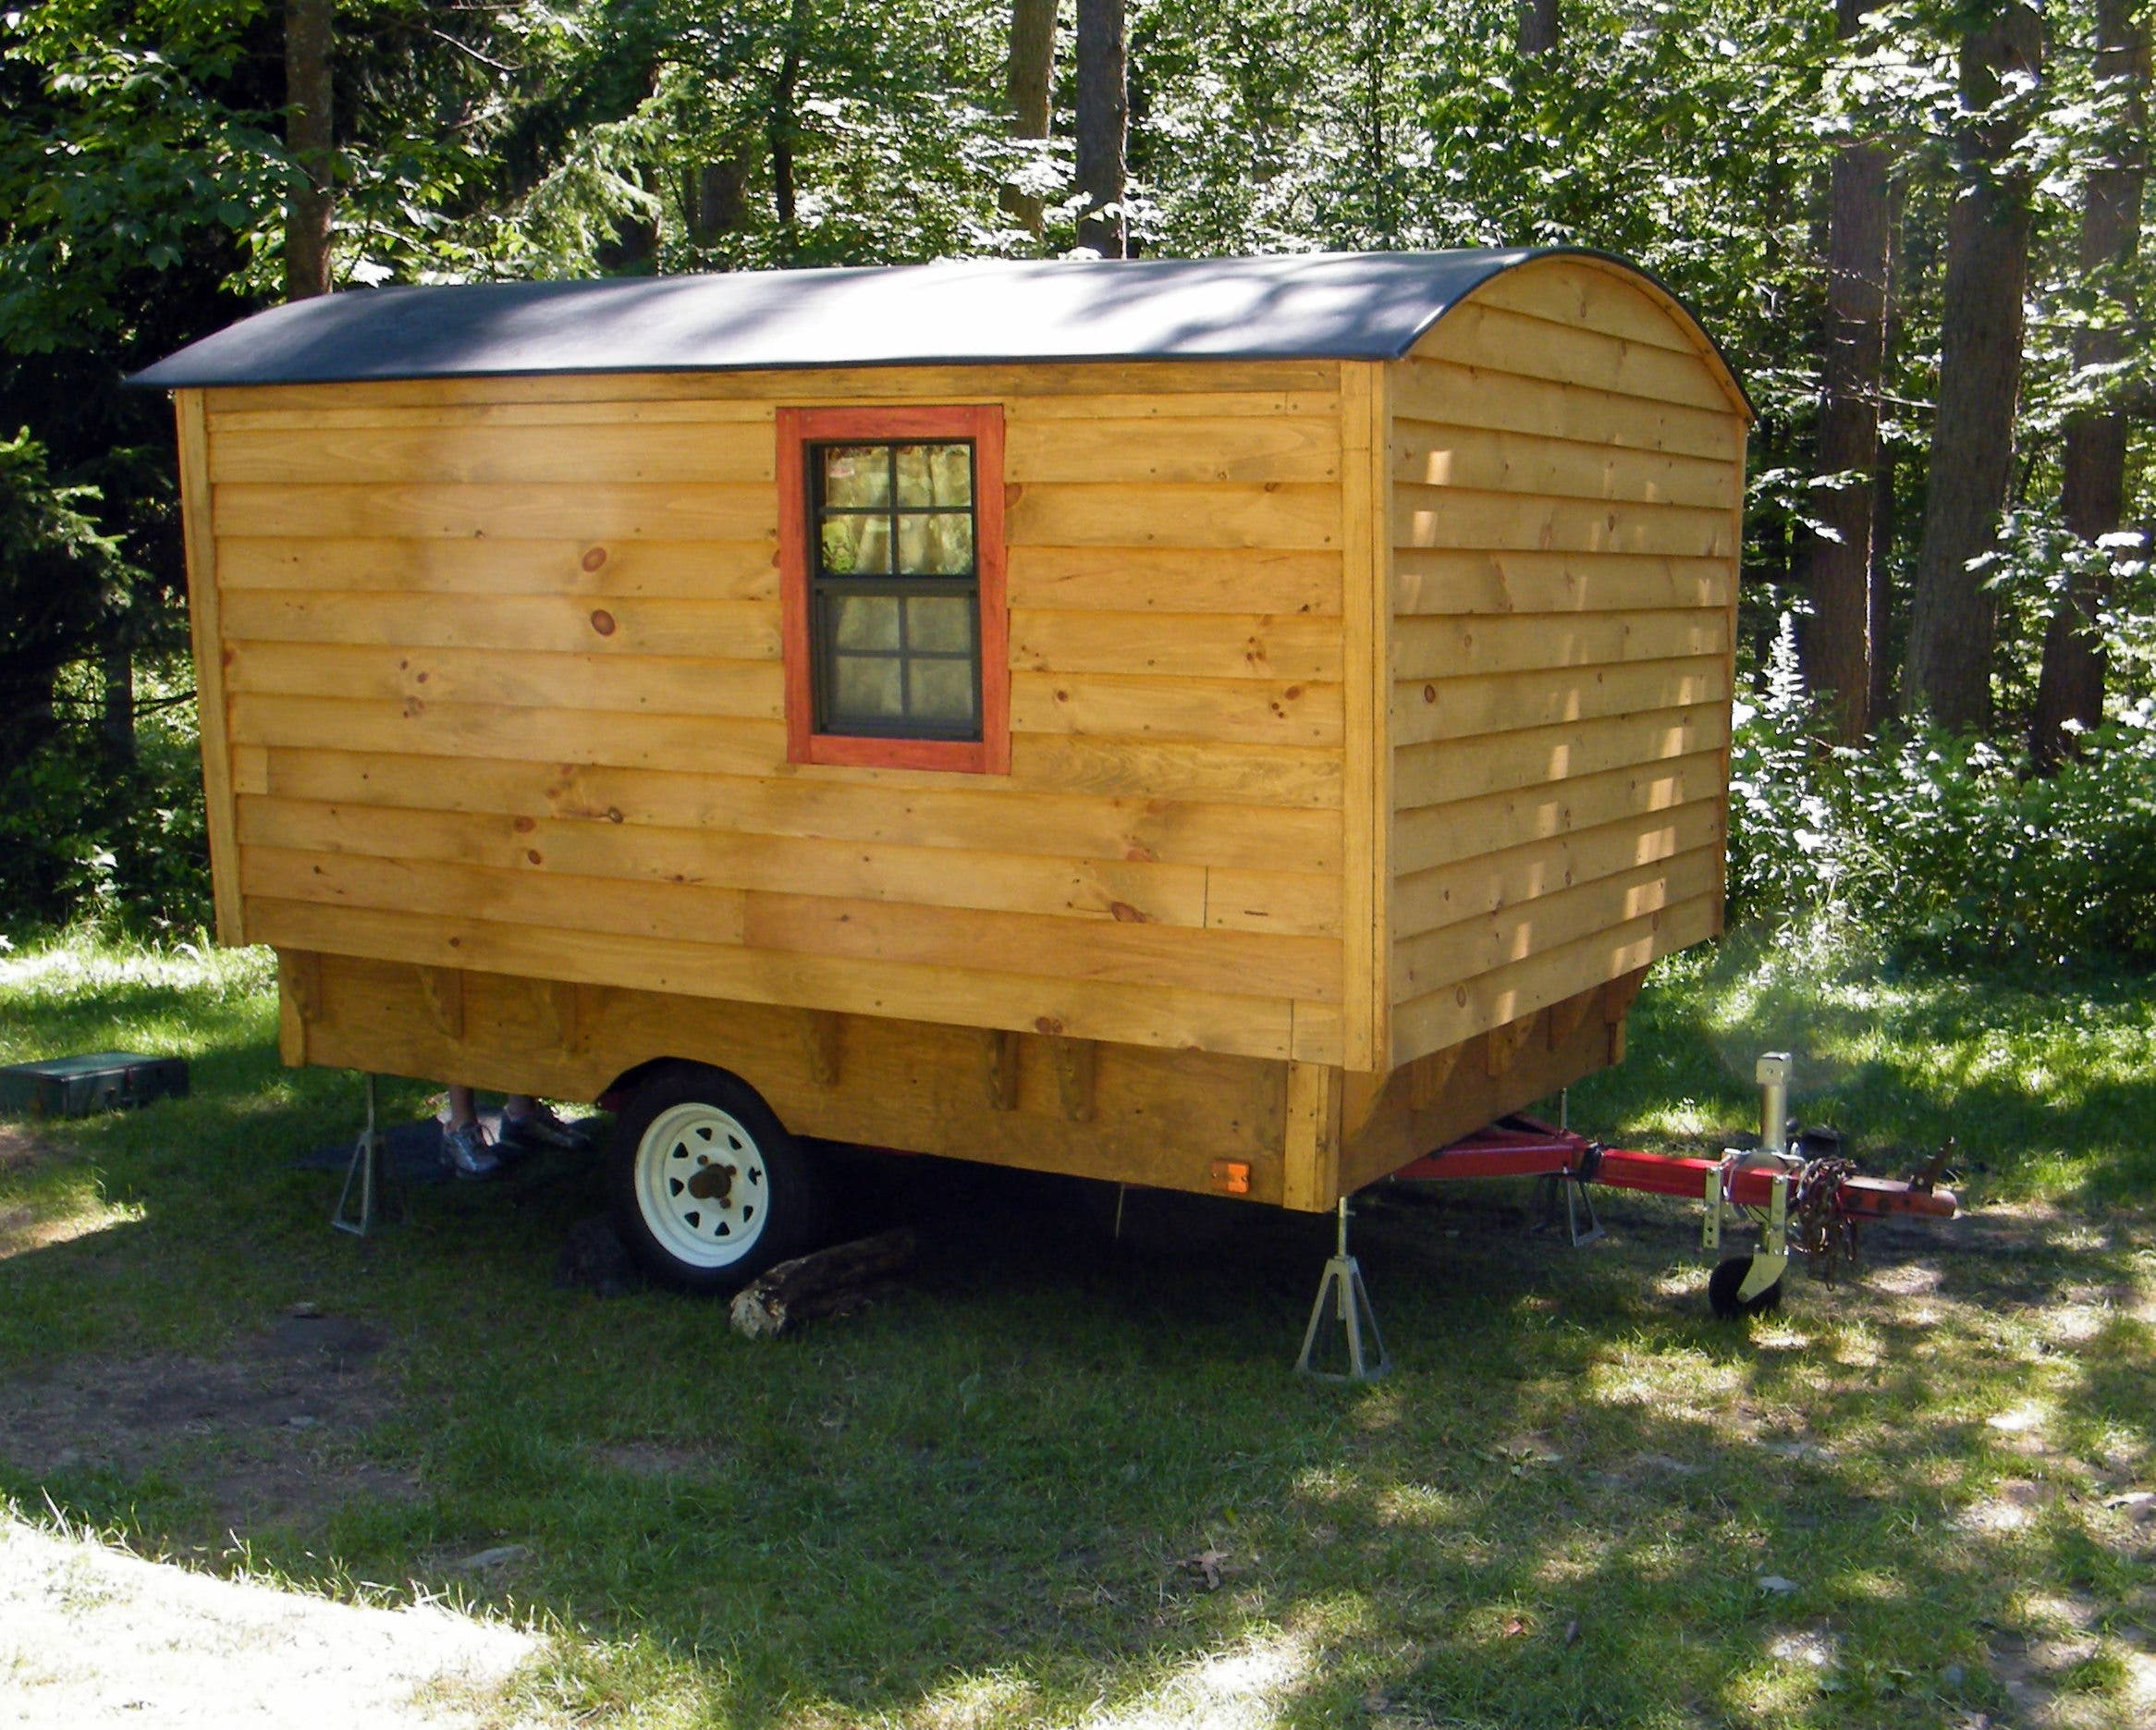 Tiny houses on trailers for sale - Tiny Houses On Trailers For Sale 18